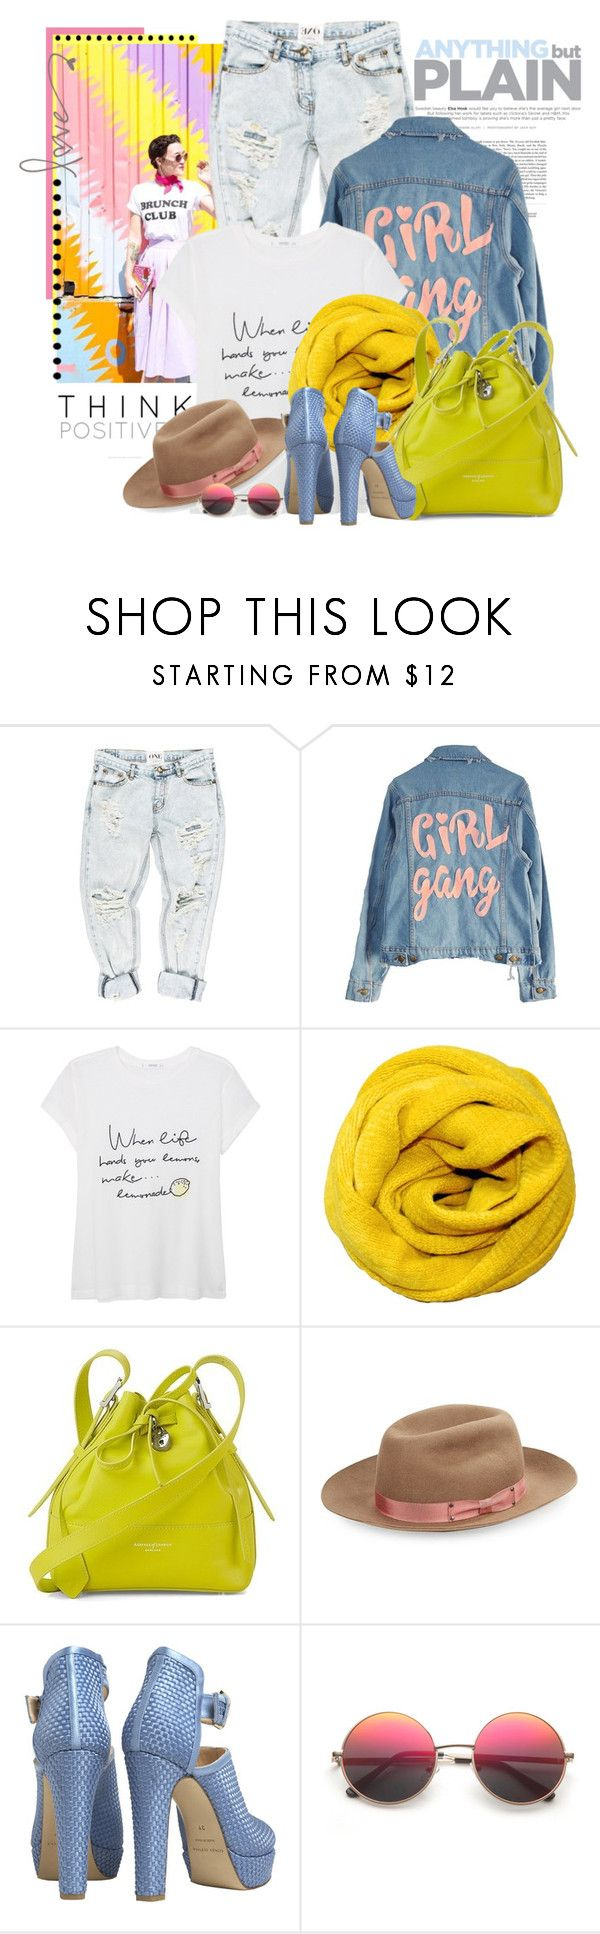 """""""Sem título #2550"""" by bellerodrigues ❤ liked on Polyvore featuring Oui, OneTeaspoon, High Heels Suicide, MANGO, Aspinal of London, Genie by Eugenia Kim and Bionda Castana"""